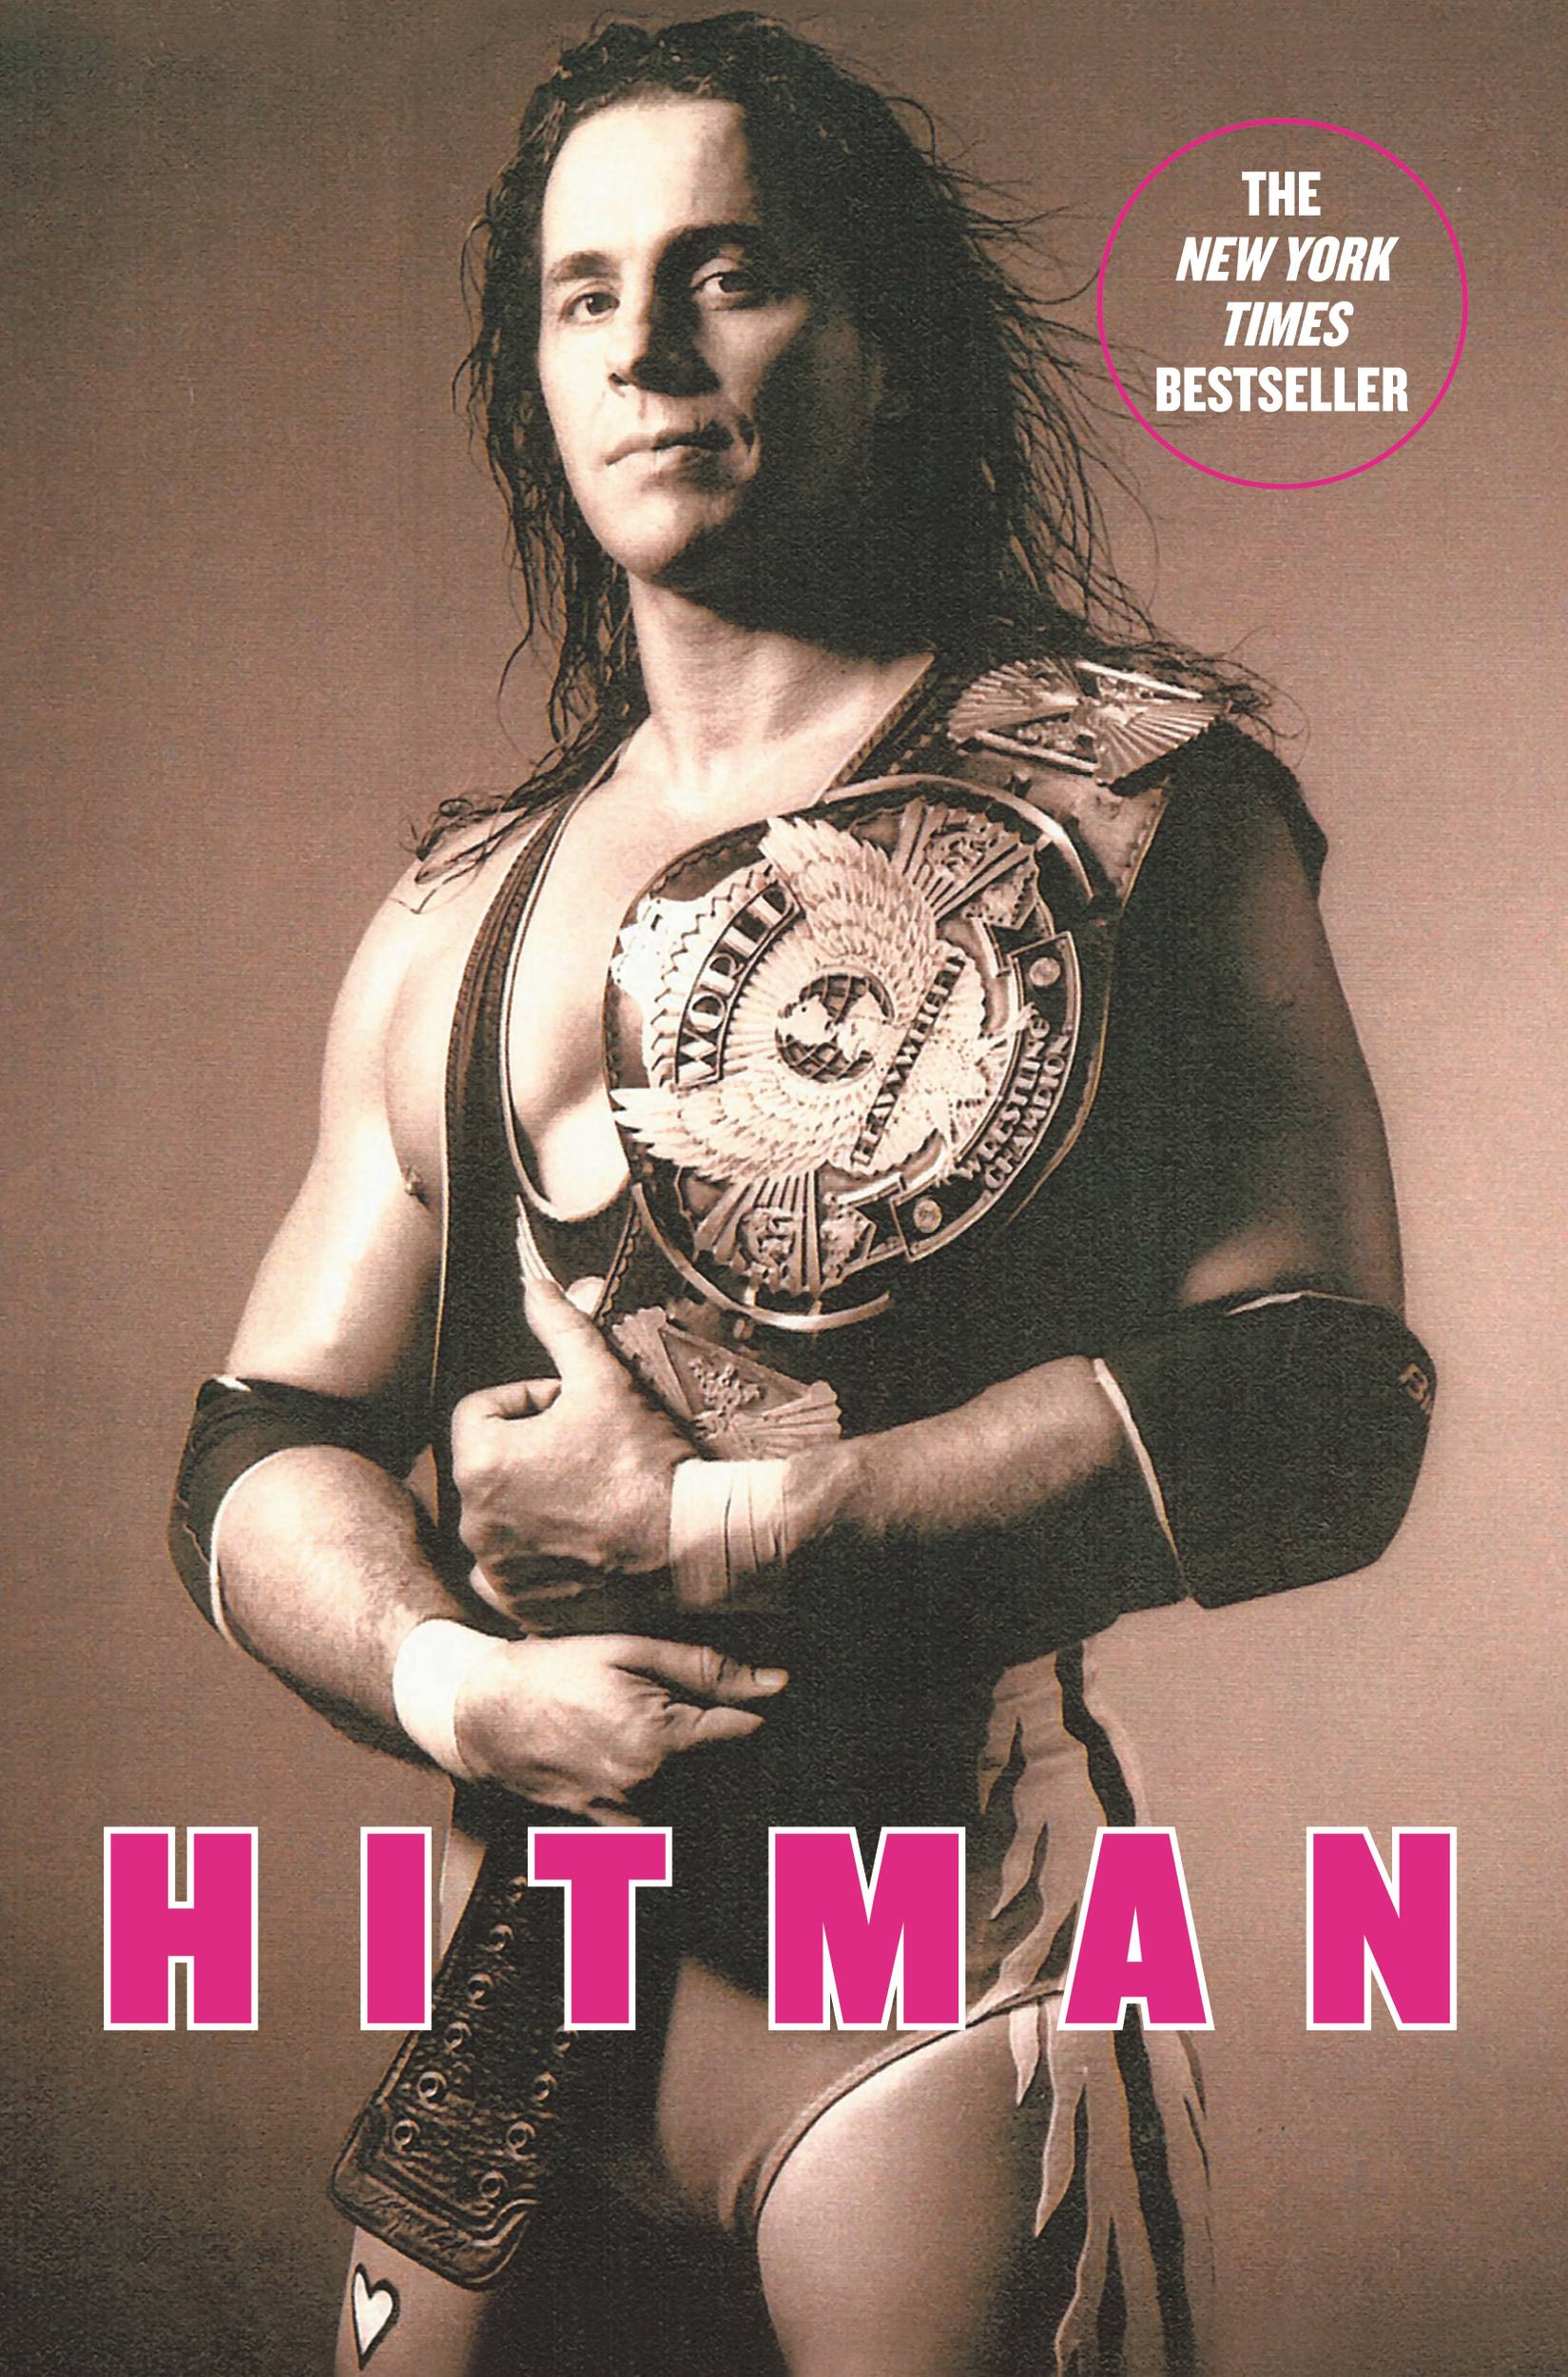 Hitman By: Bret Hart